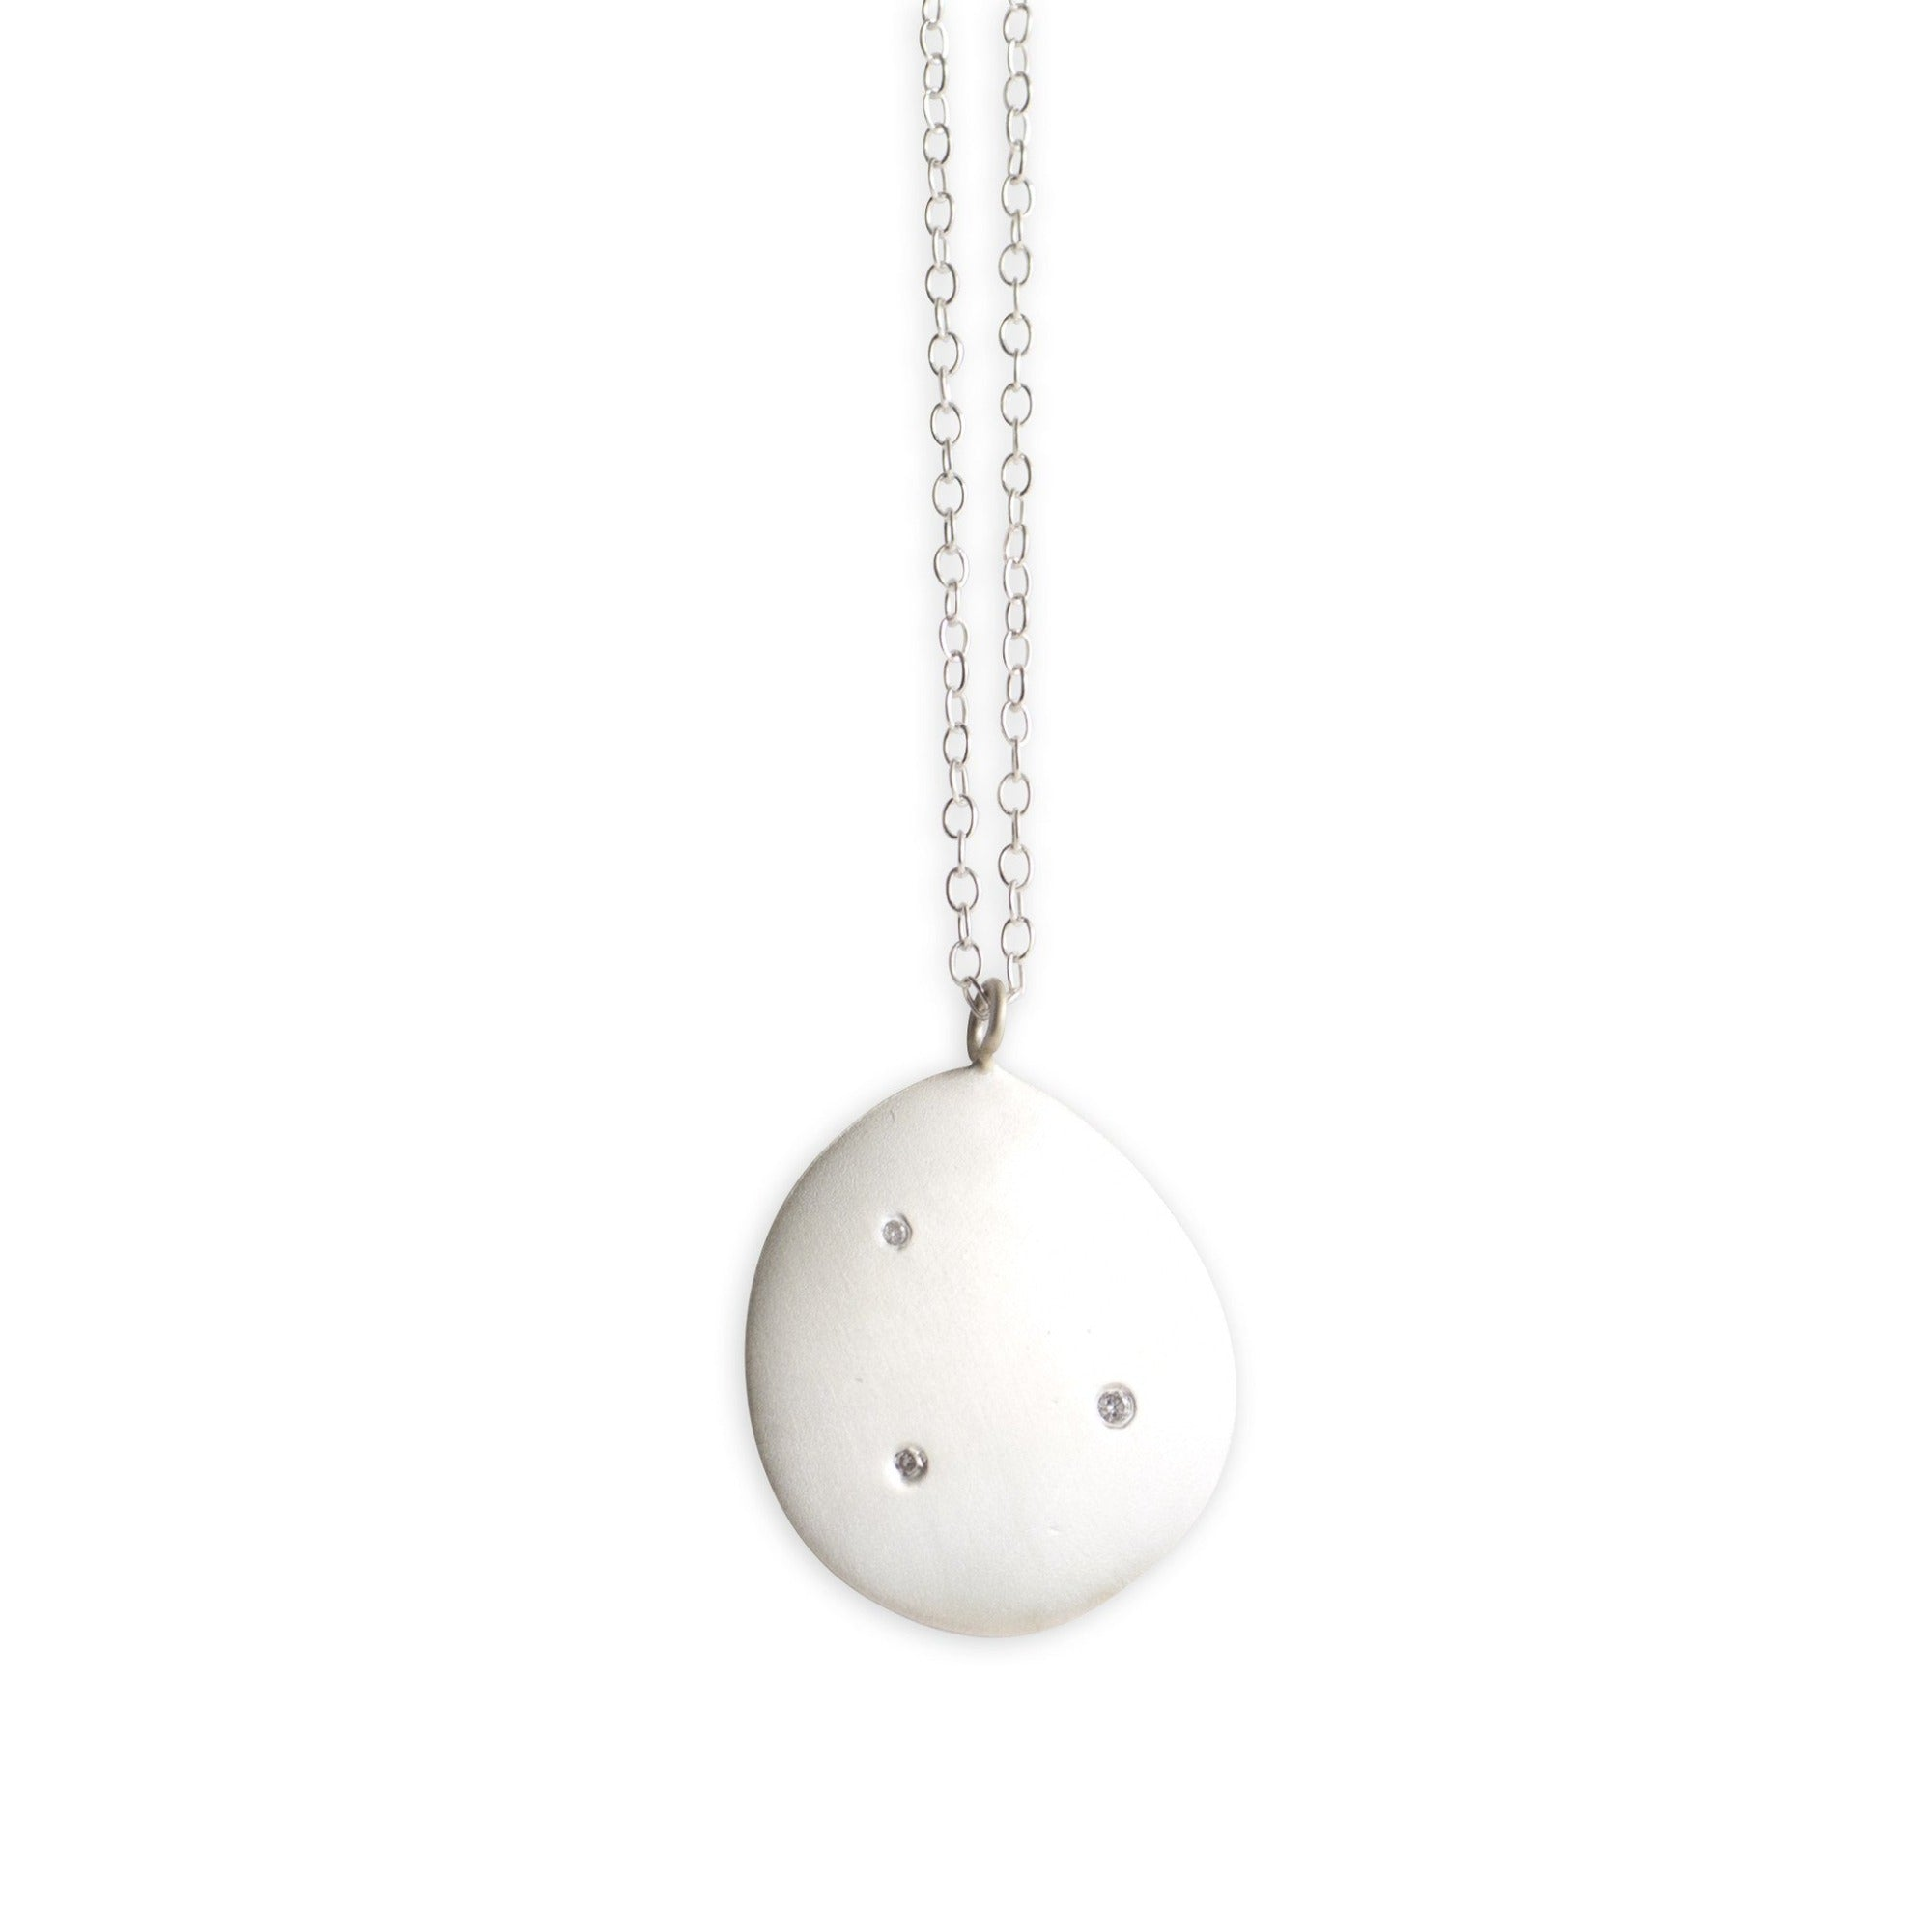 sterling silver on a sterling silver chain with white diamonds large disc pendant